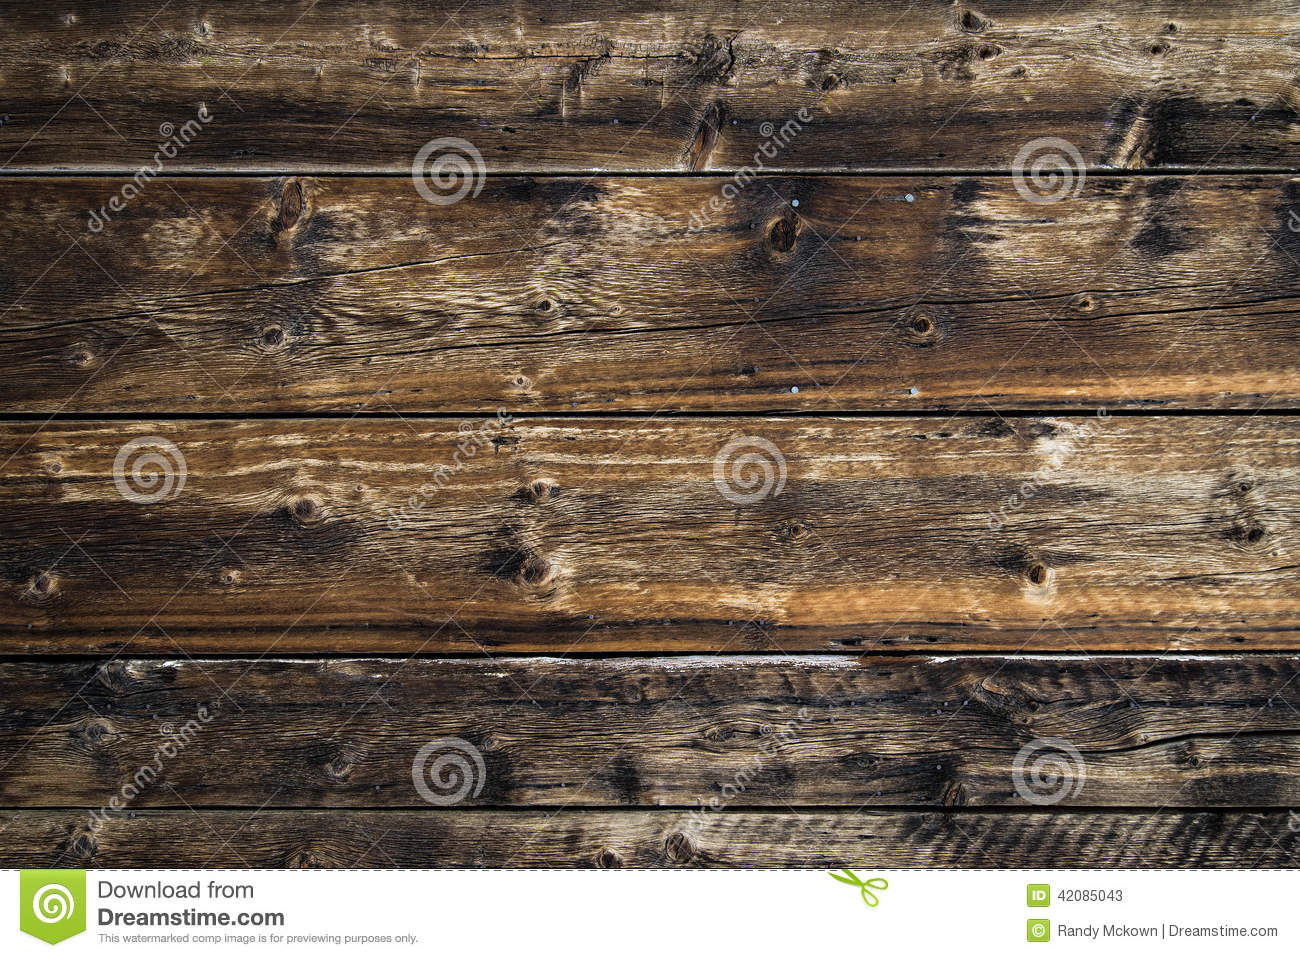 Old Barn Wood Background Texture Stock Photo - Image: 42085043